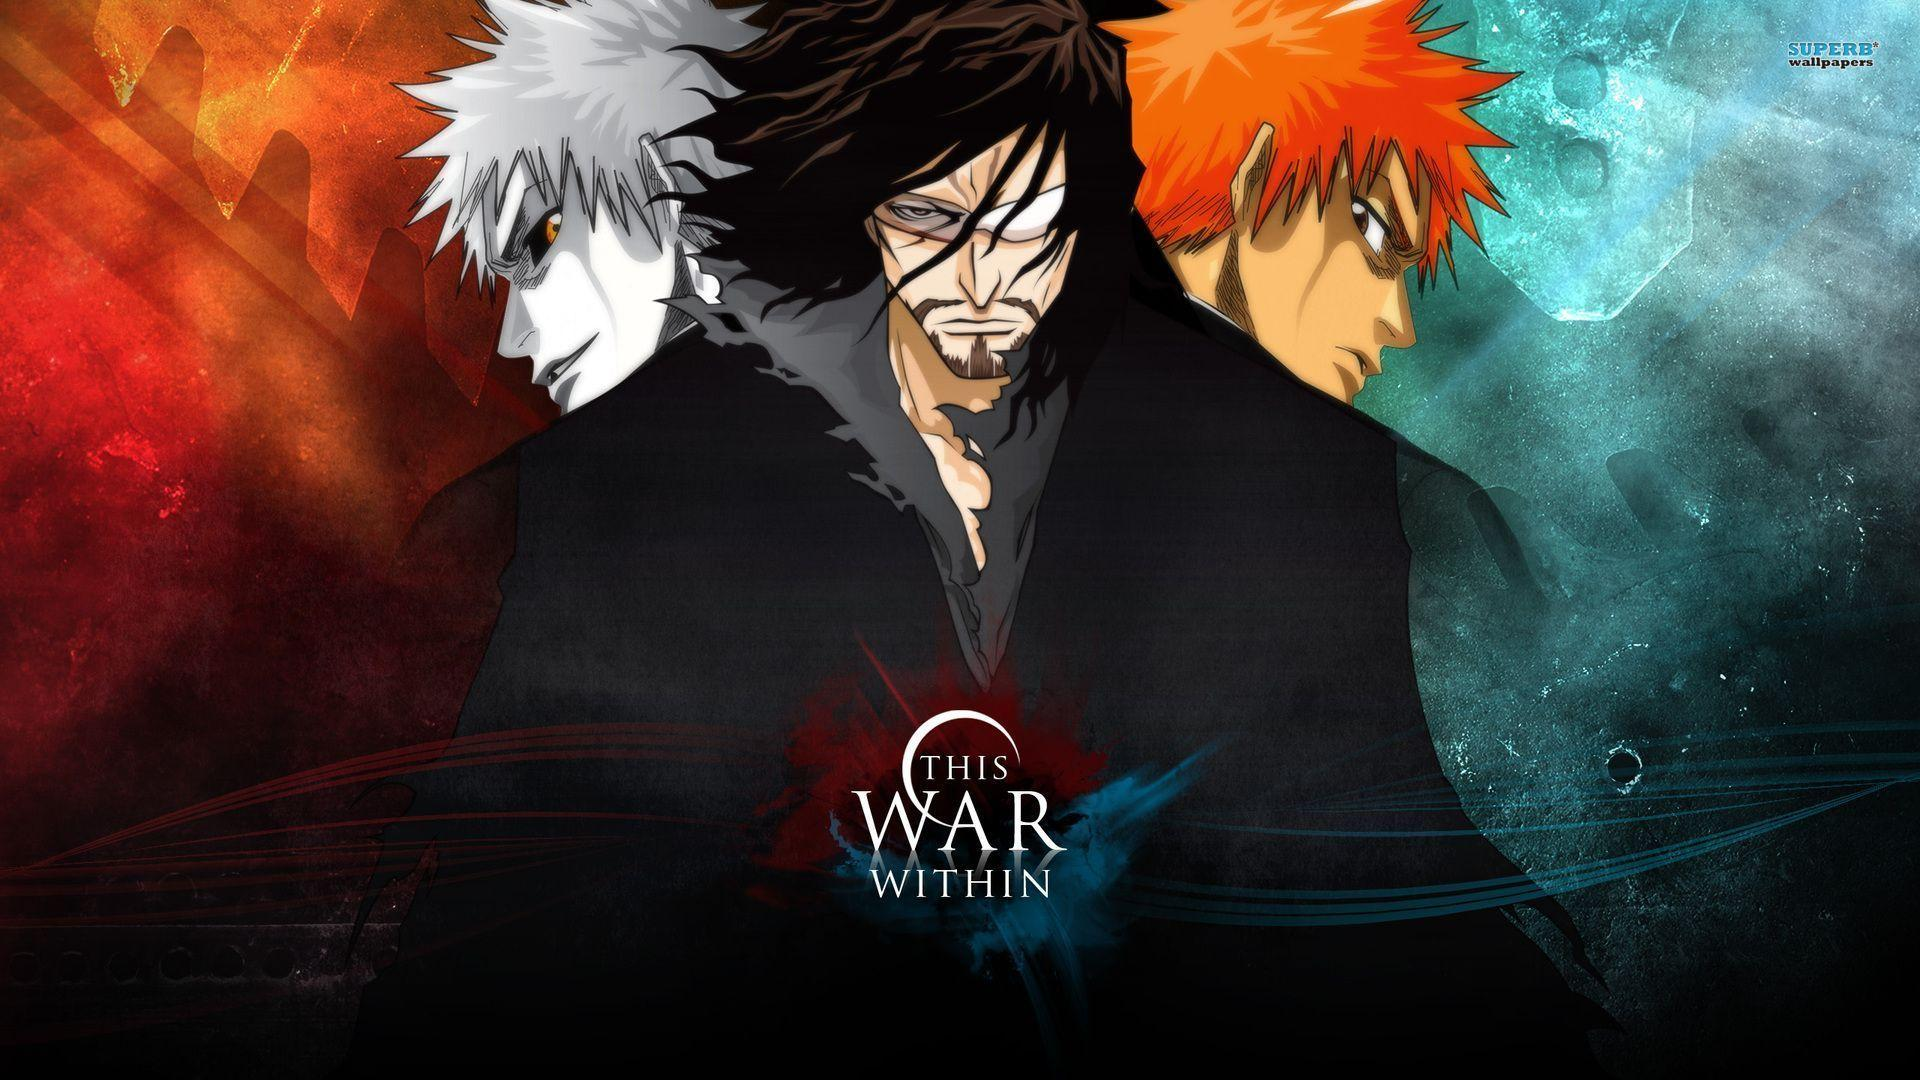 bleach wallpaper 1920 x 1080 - photo #39